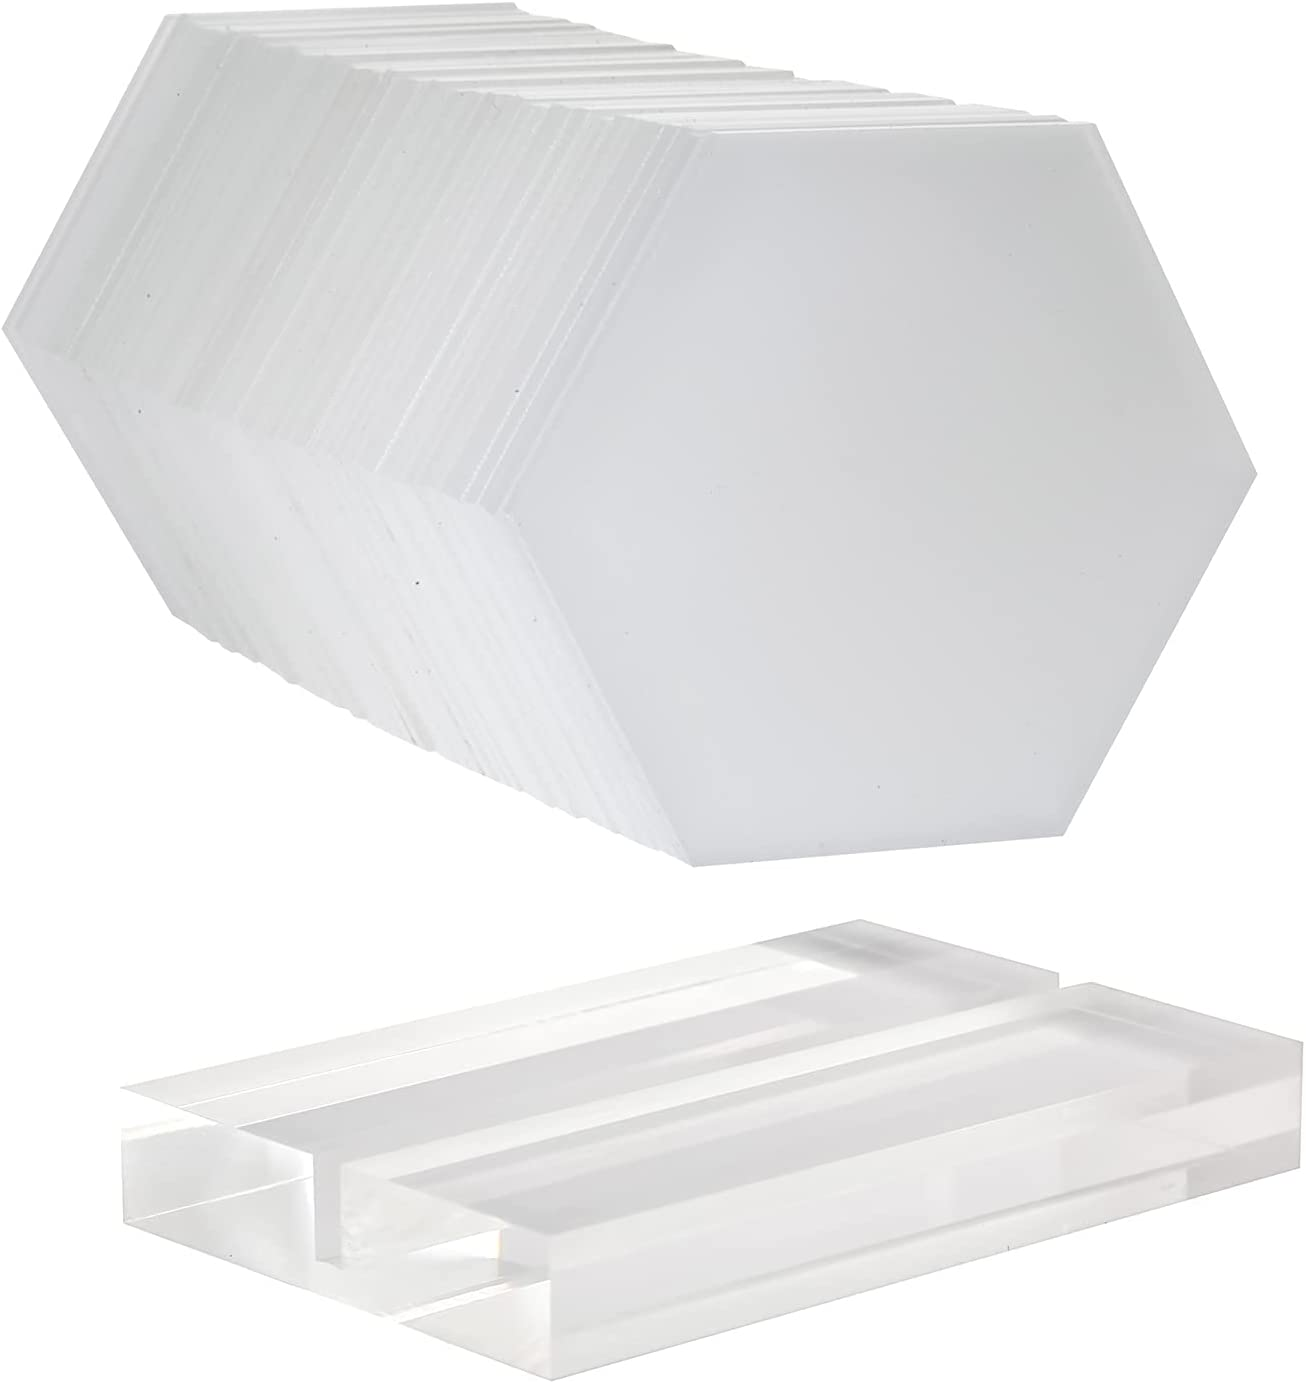 Cheap mail order specialty store HighFree 50pcs Our shop most popular Clear Hexagon Acrylic Place Cards Hold 20pcs with